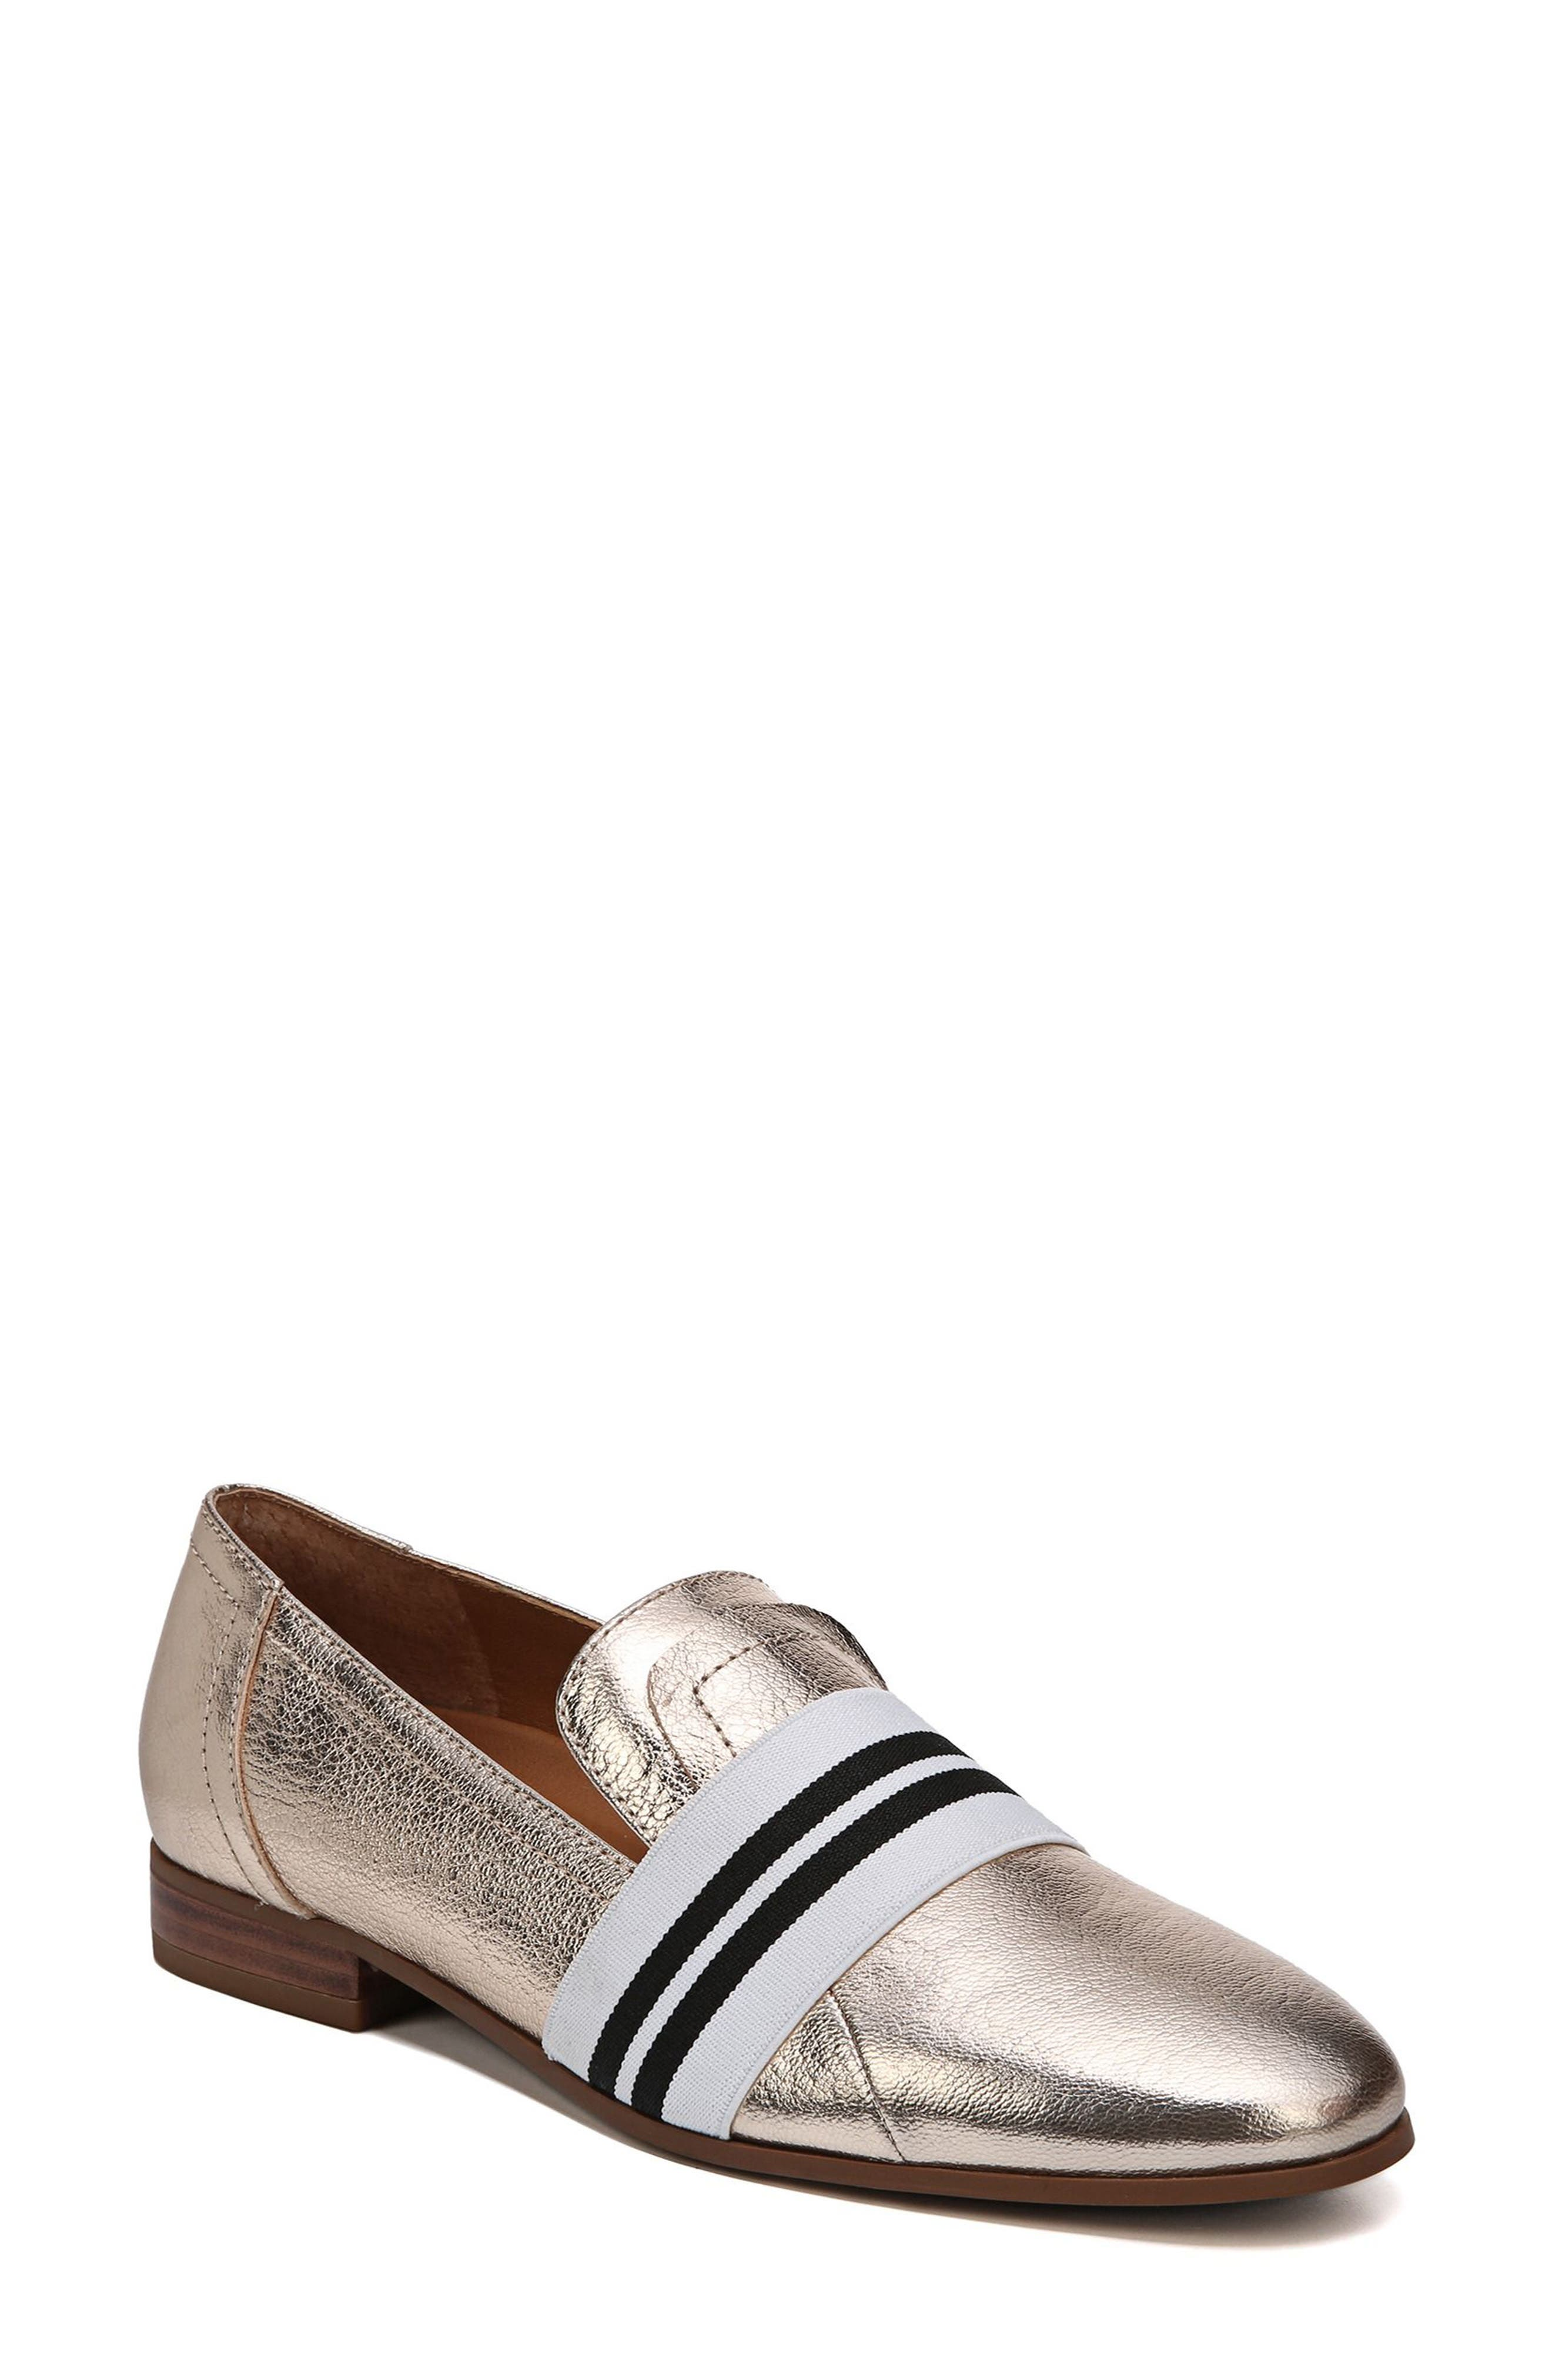 Odyssey Loafer,                             Main thumbnail 1, color,                             PLATINO LEATHER